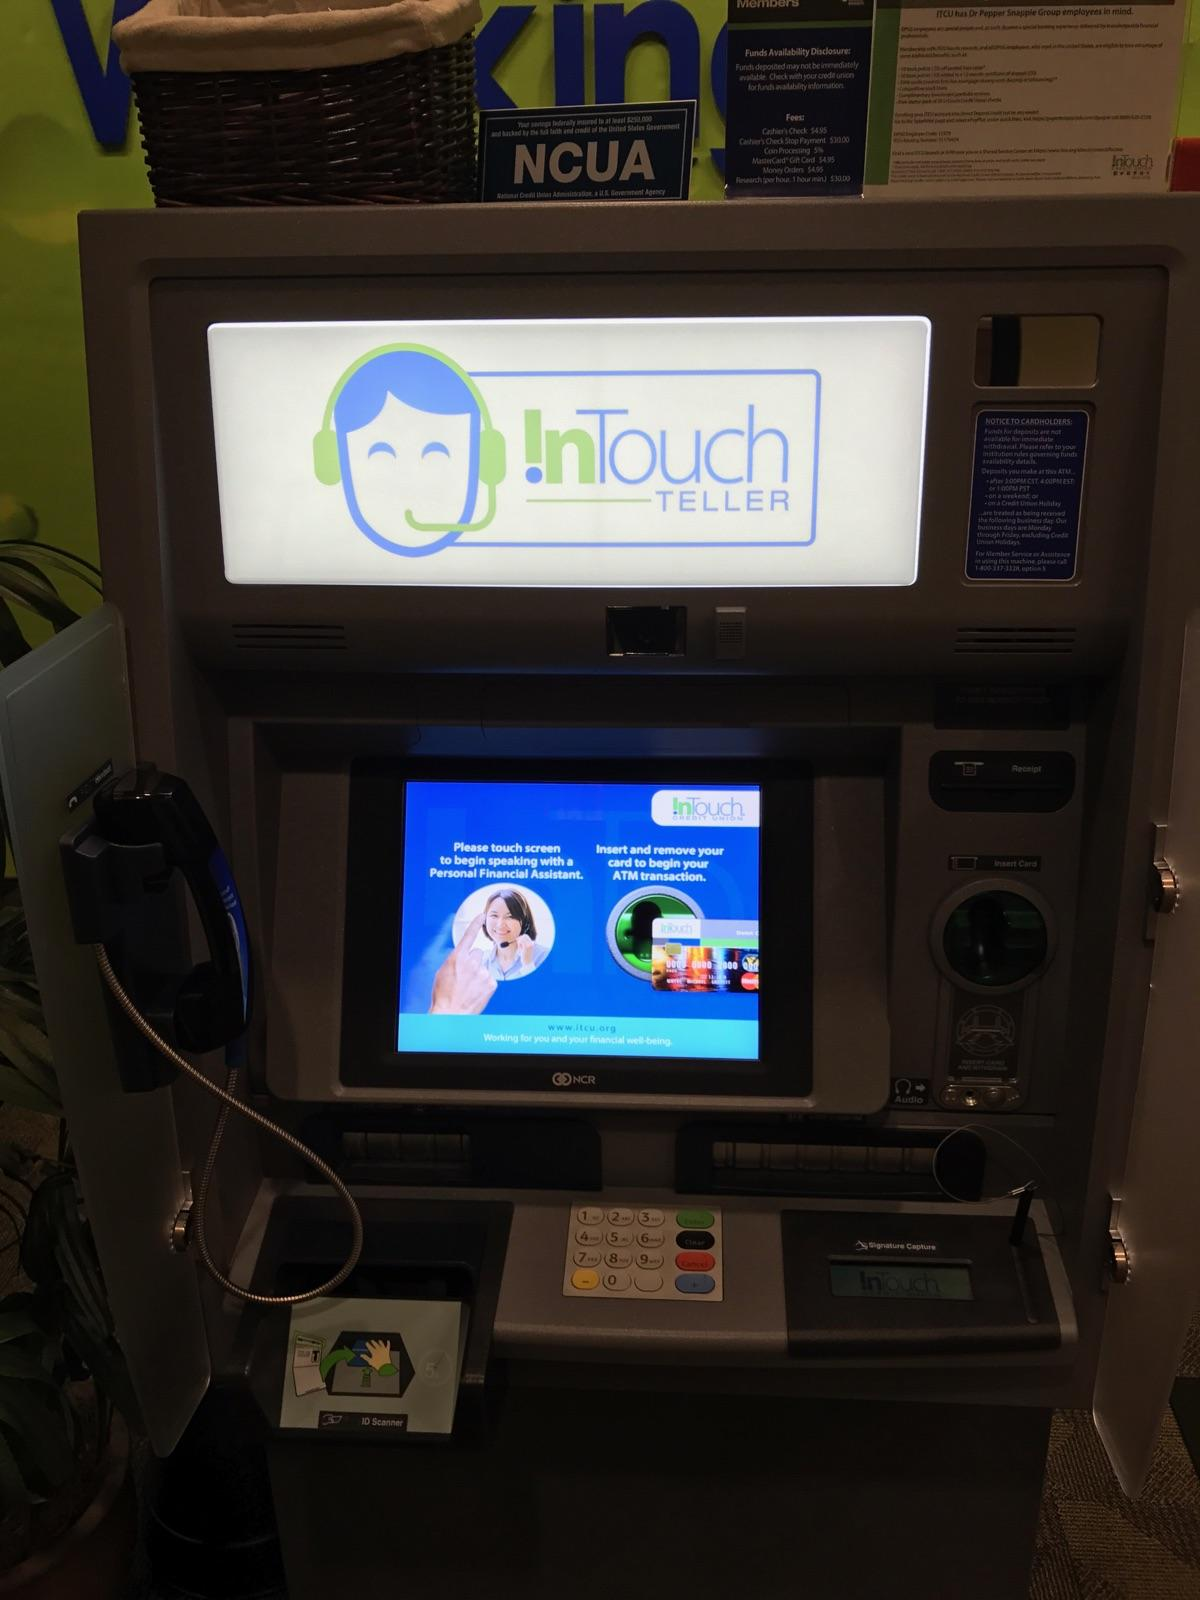 InTouch Teller ITM Display with Active Monitor